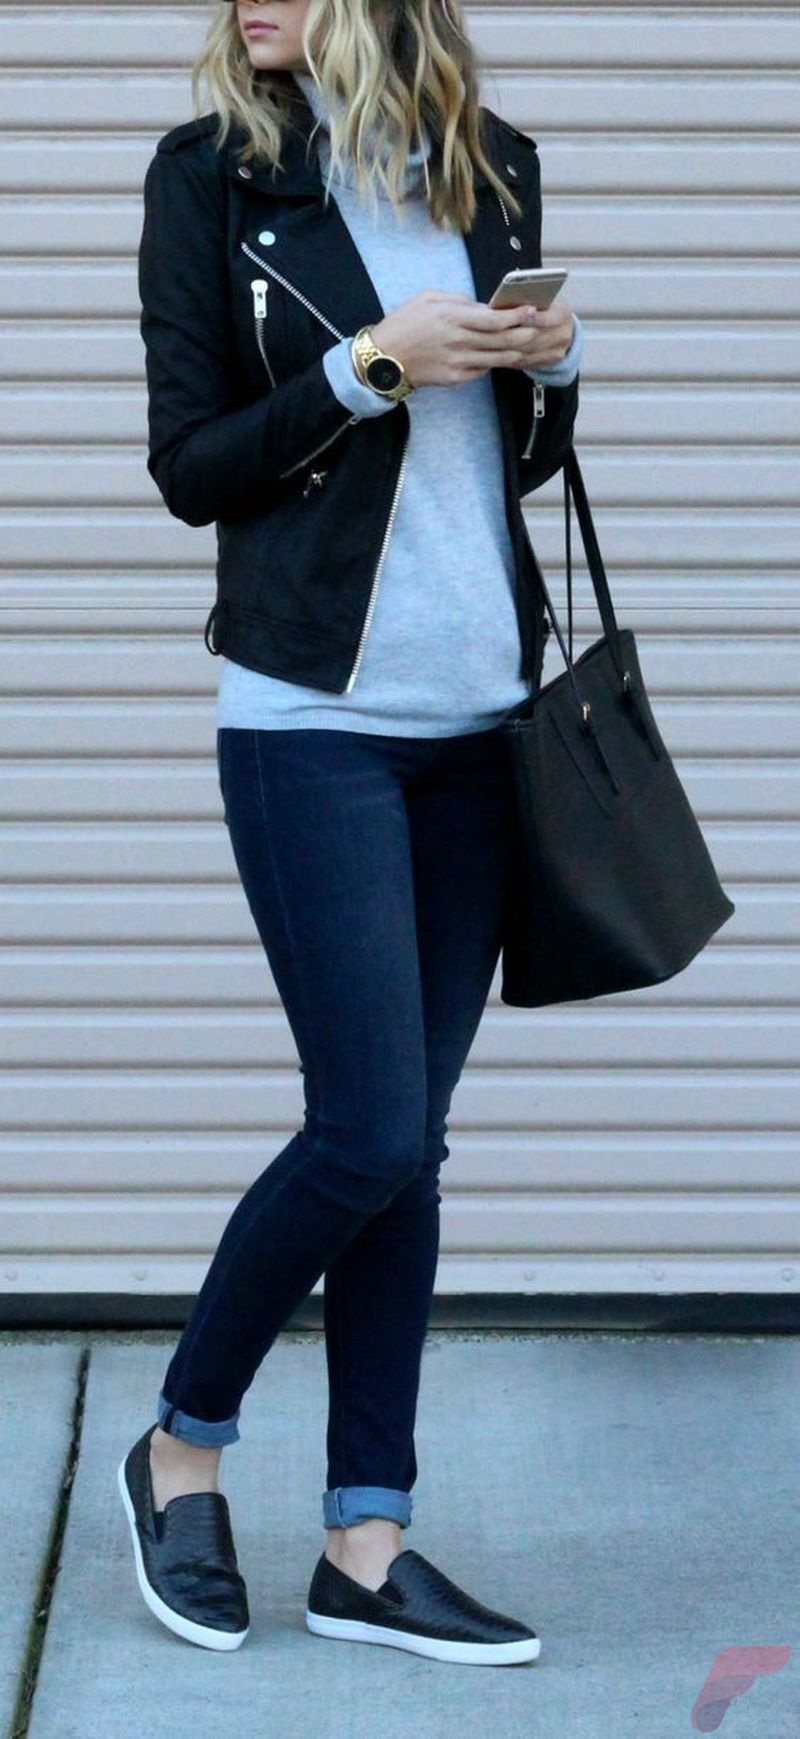 Black leather jacket outfit 29